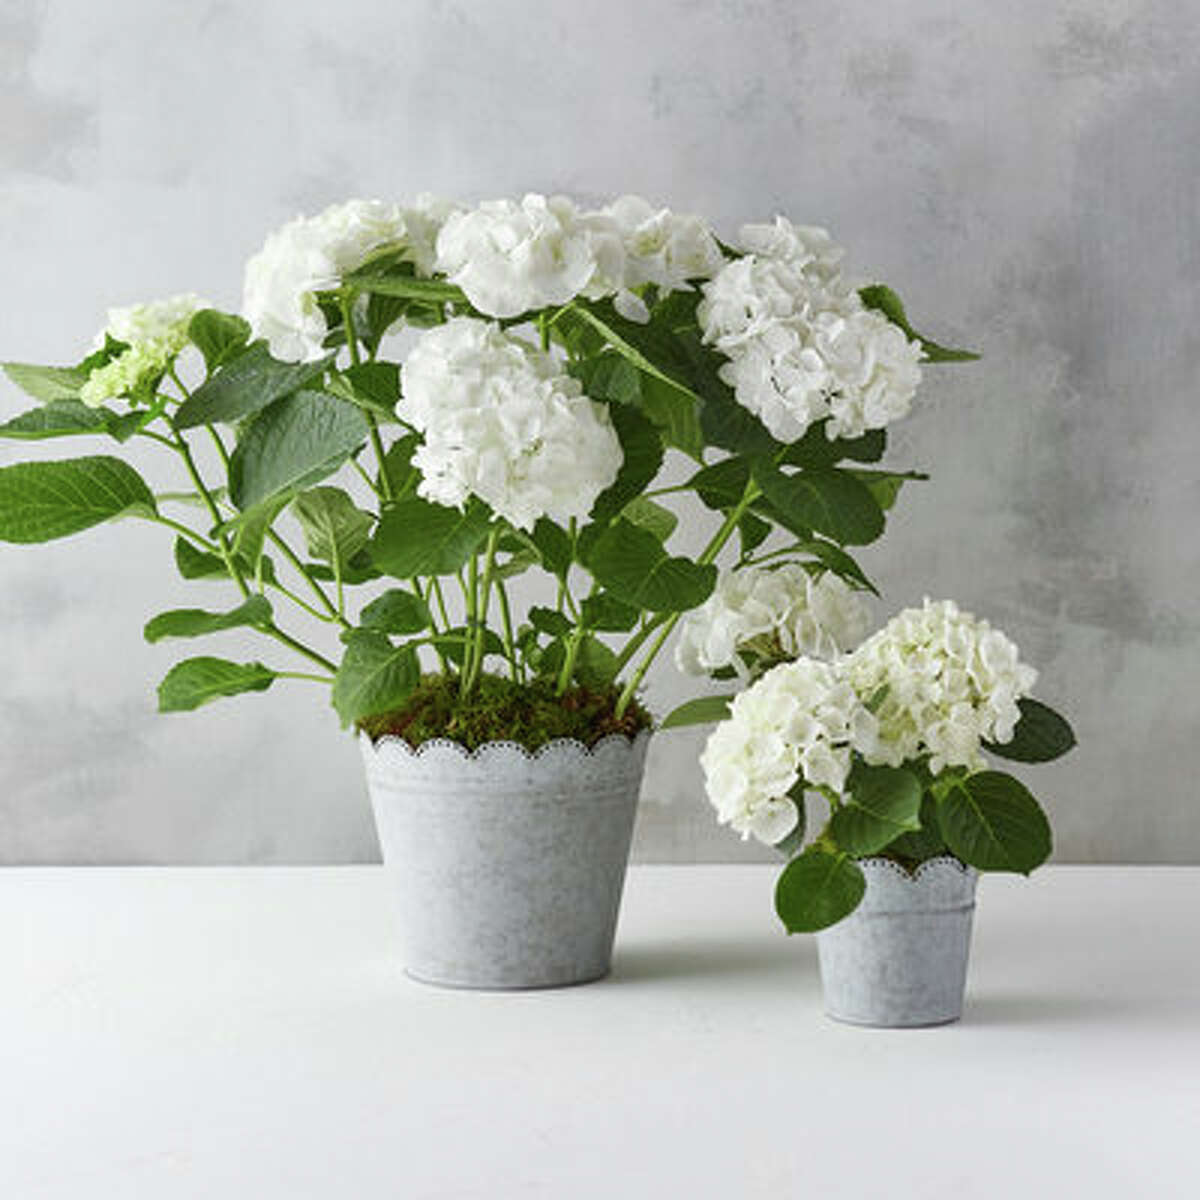 Quintessential Spring Glory Hydrangeas, Scalloped Pot, available in two sizes, small ($48) and large ($98) Take a break from tending your garden. These scalloped pots arrive with a planted blossoming white hydrangea, the perfect gift for those wanting to enjoy blooms from spring well into summer. The Terrain exclusive galvanized steel pot is topped with an elegant scalloped edge, ideal for tabletop décor, separate or as a pair.